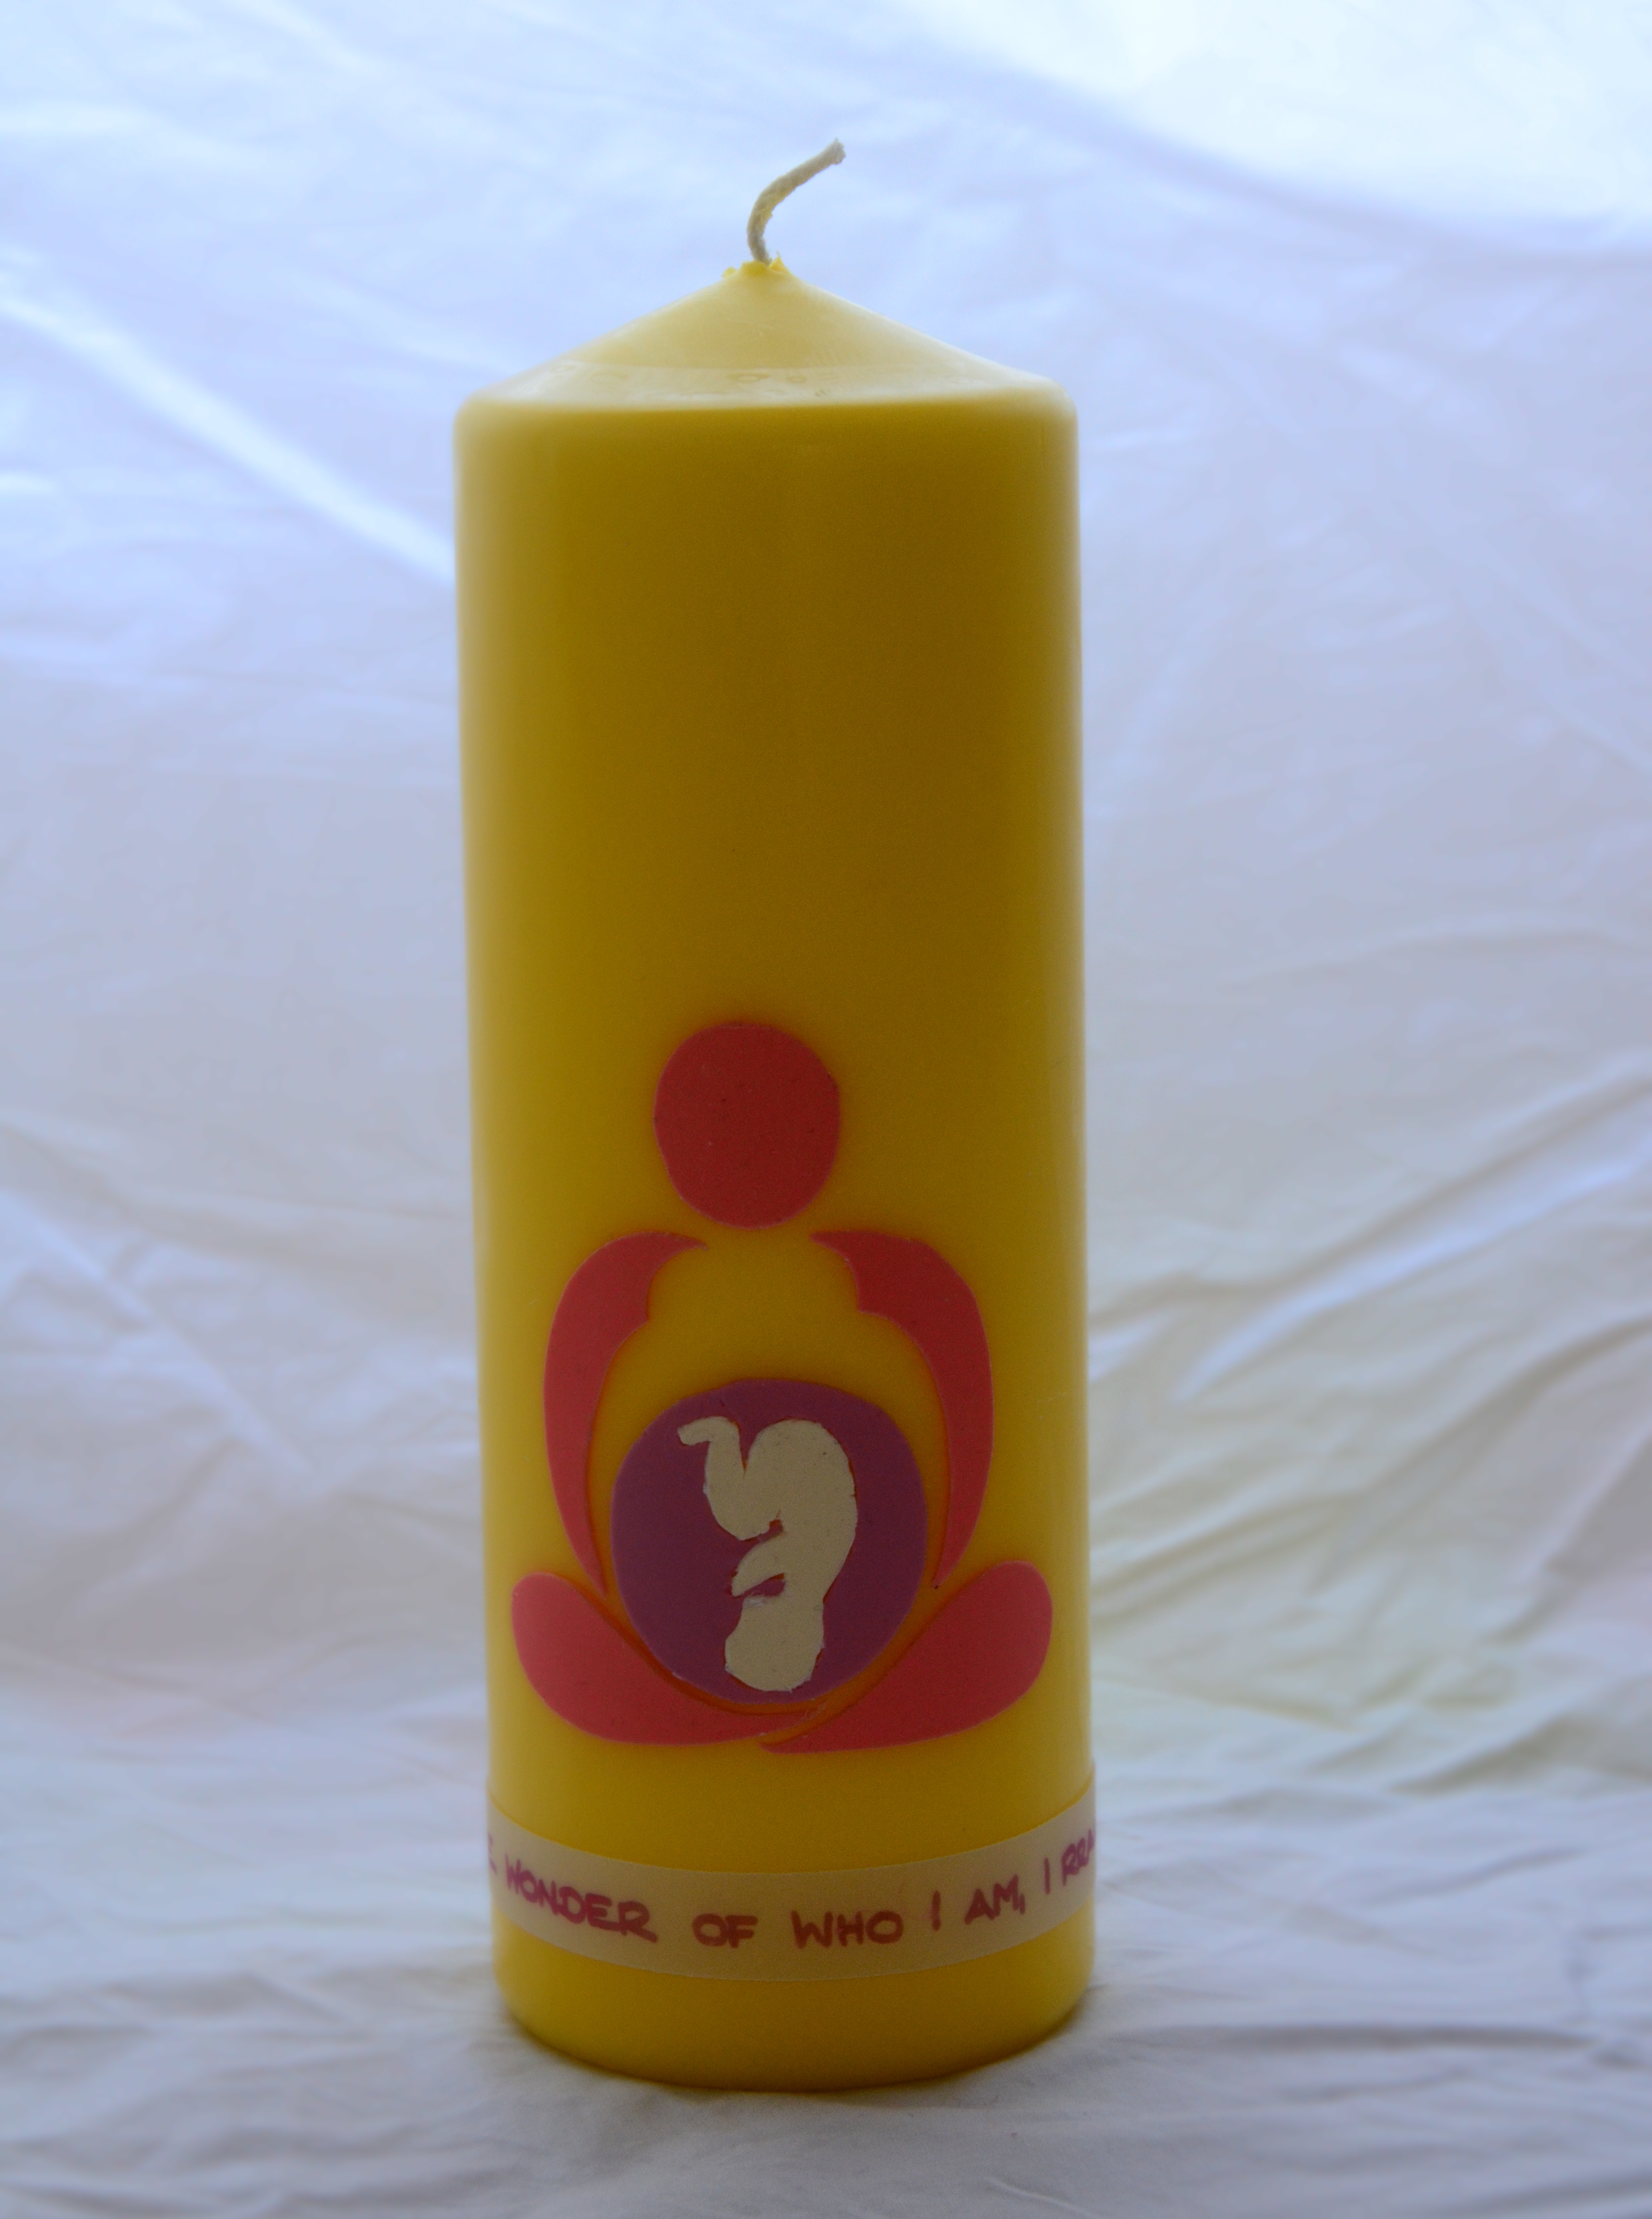 2014-11-08_0912_Birth-Candle-Celine_a